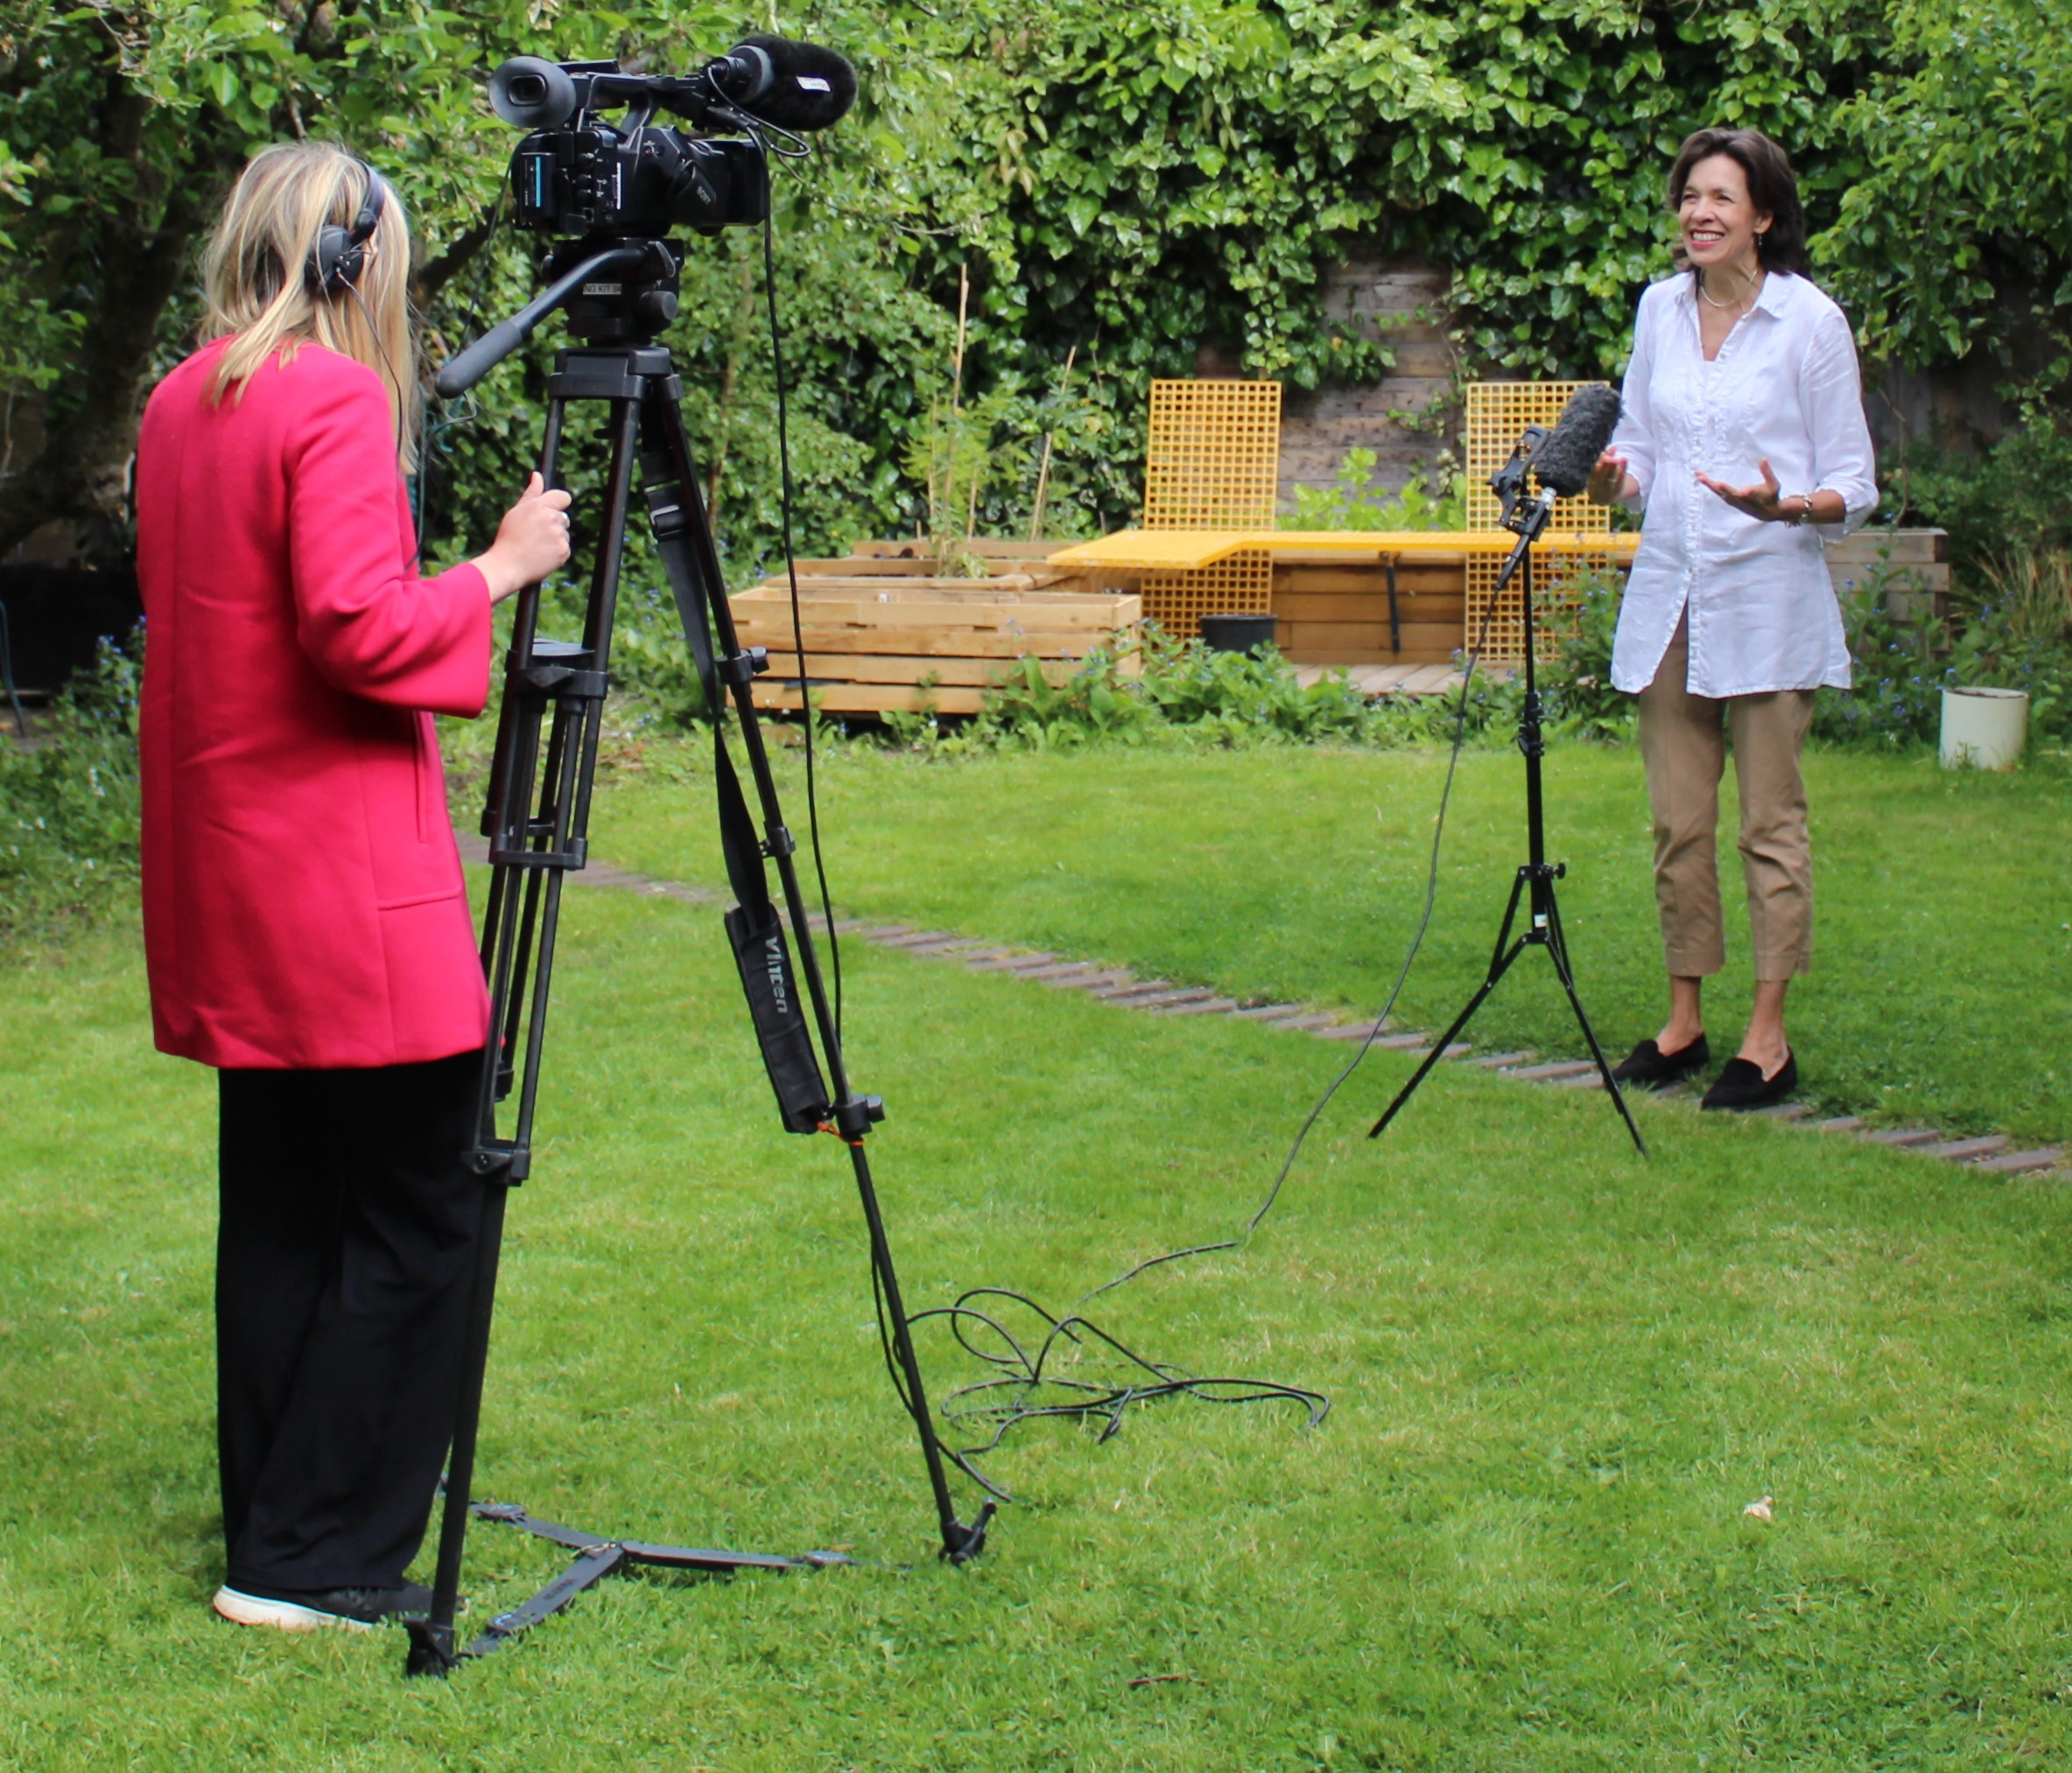 Above: GCA ceo Amanda Fergusson enthuses about the role of cards in today's society and history to ITV journalist Lauren Hall who filmed the interview on Wednesday.